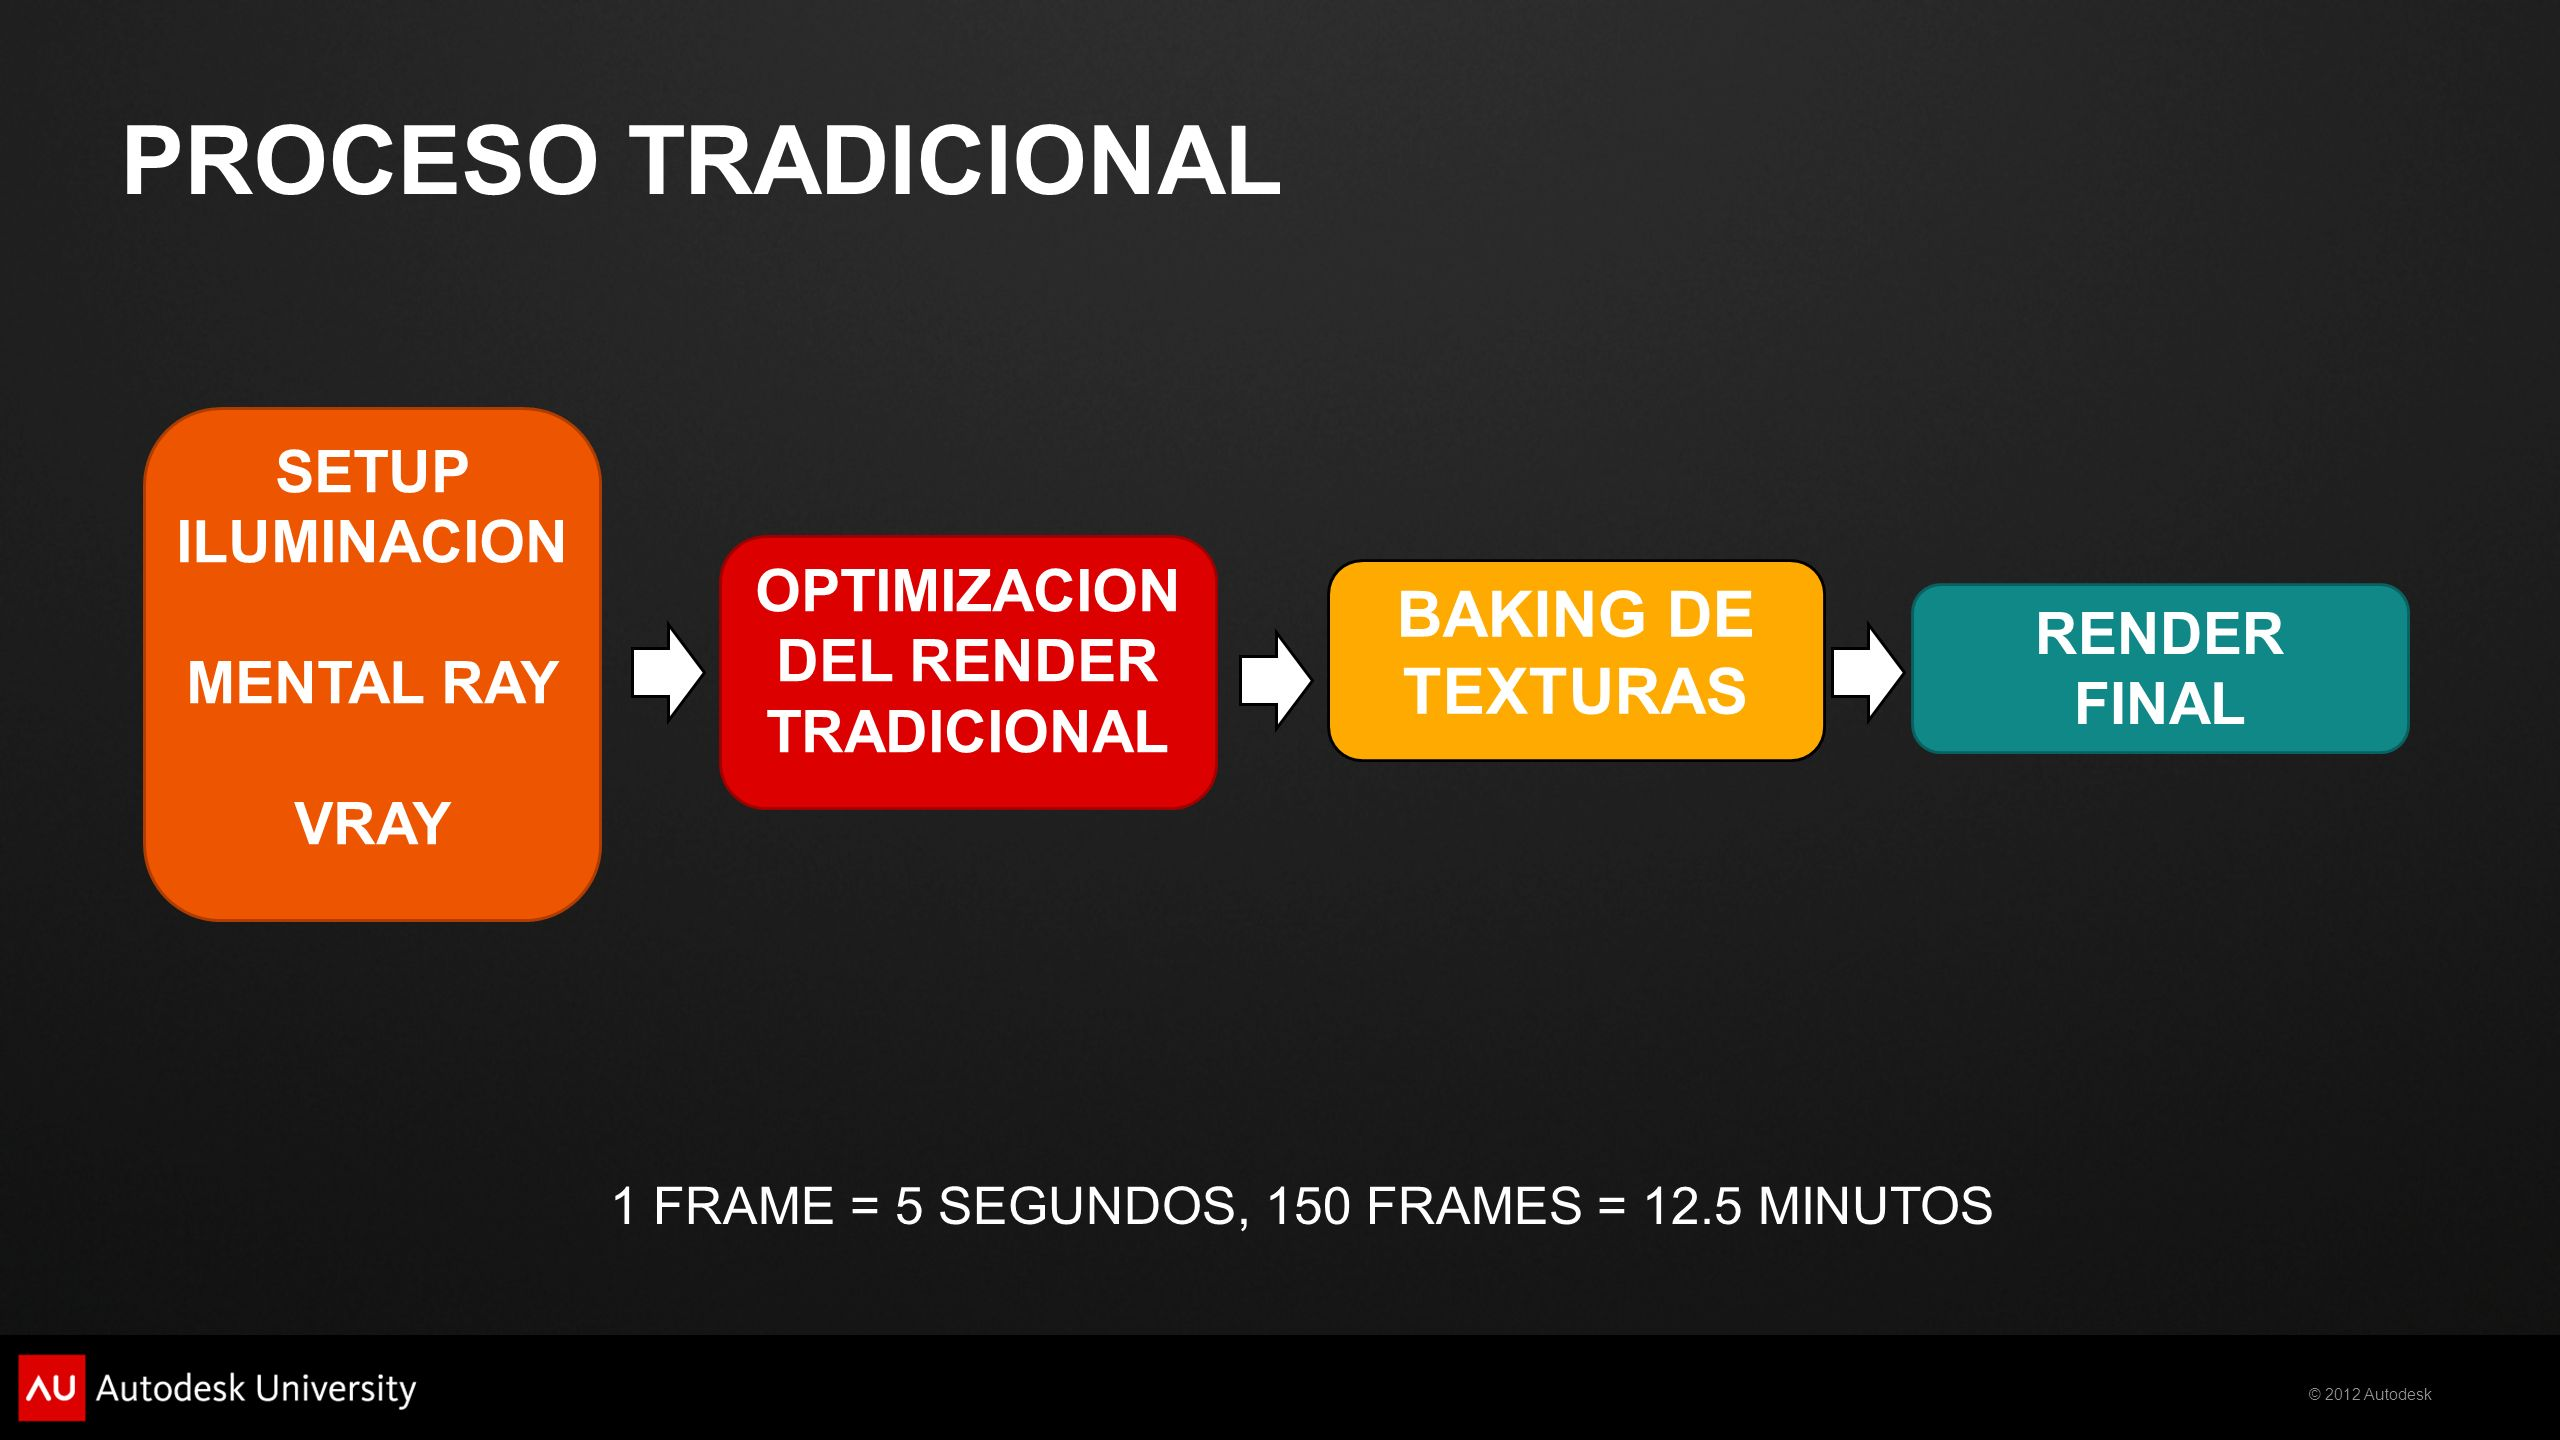 OPTIMIZACION DEL RENDER TRADICIONAL